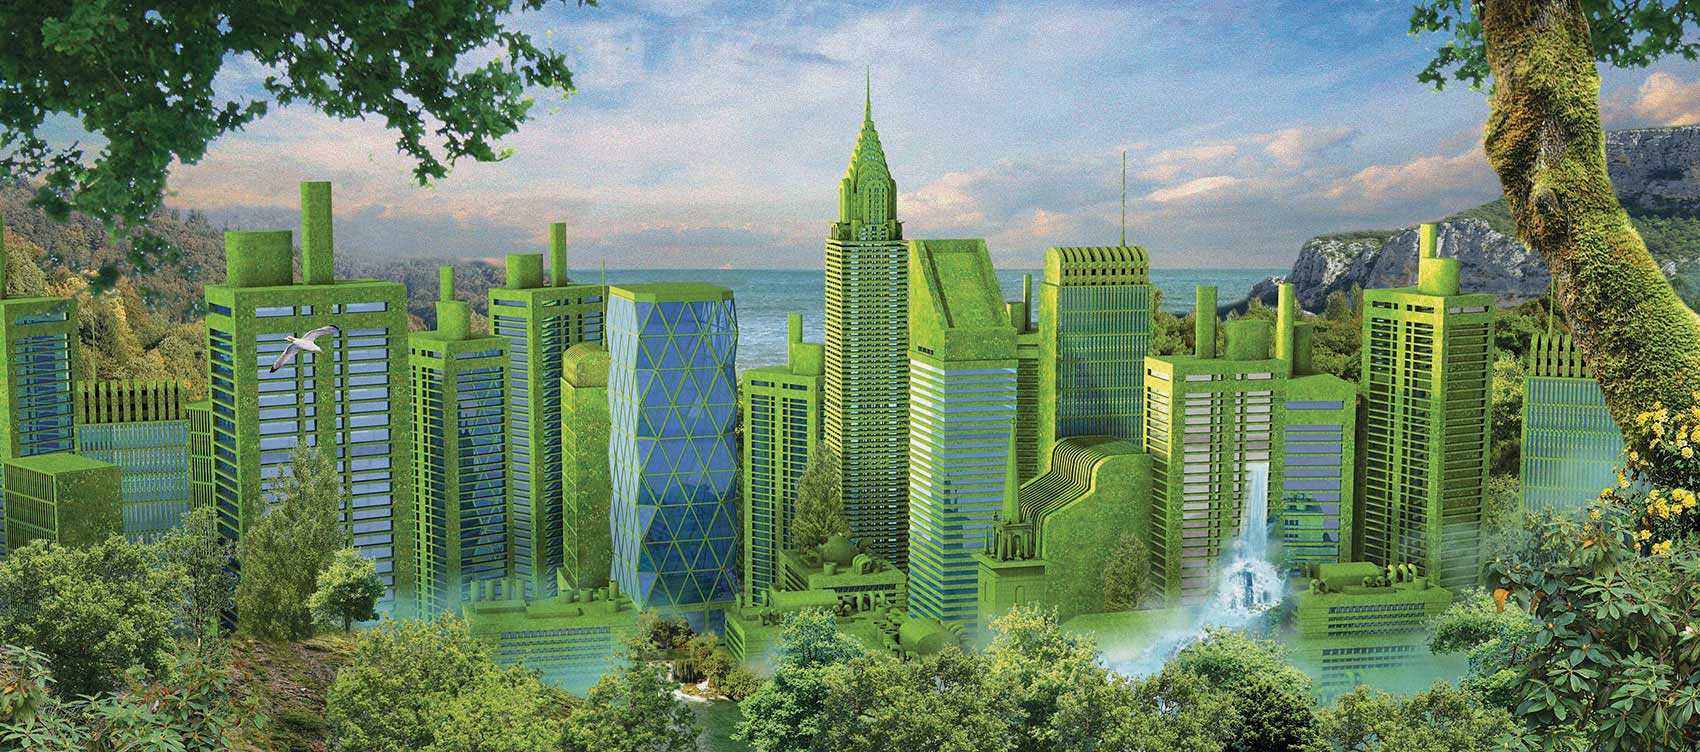 CGI-illustration-Architecture_Green-city-2